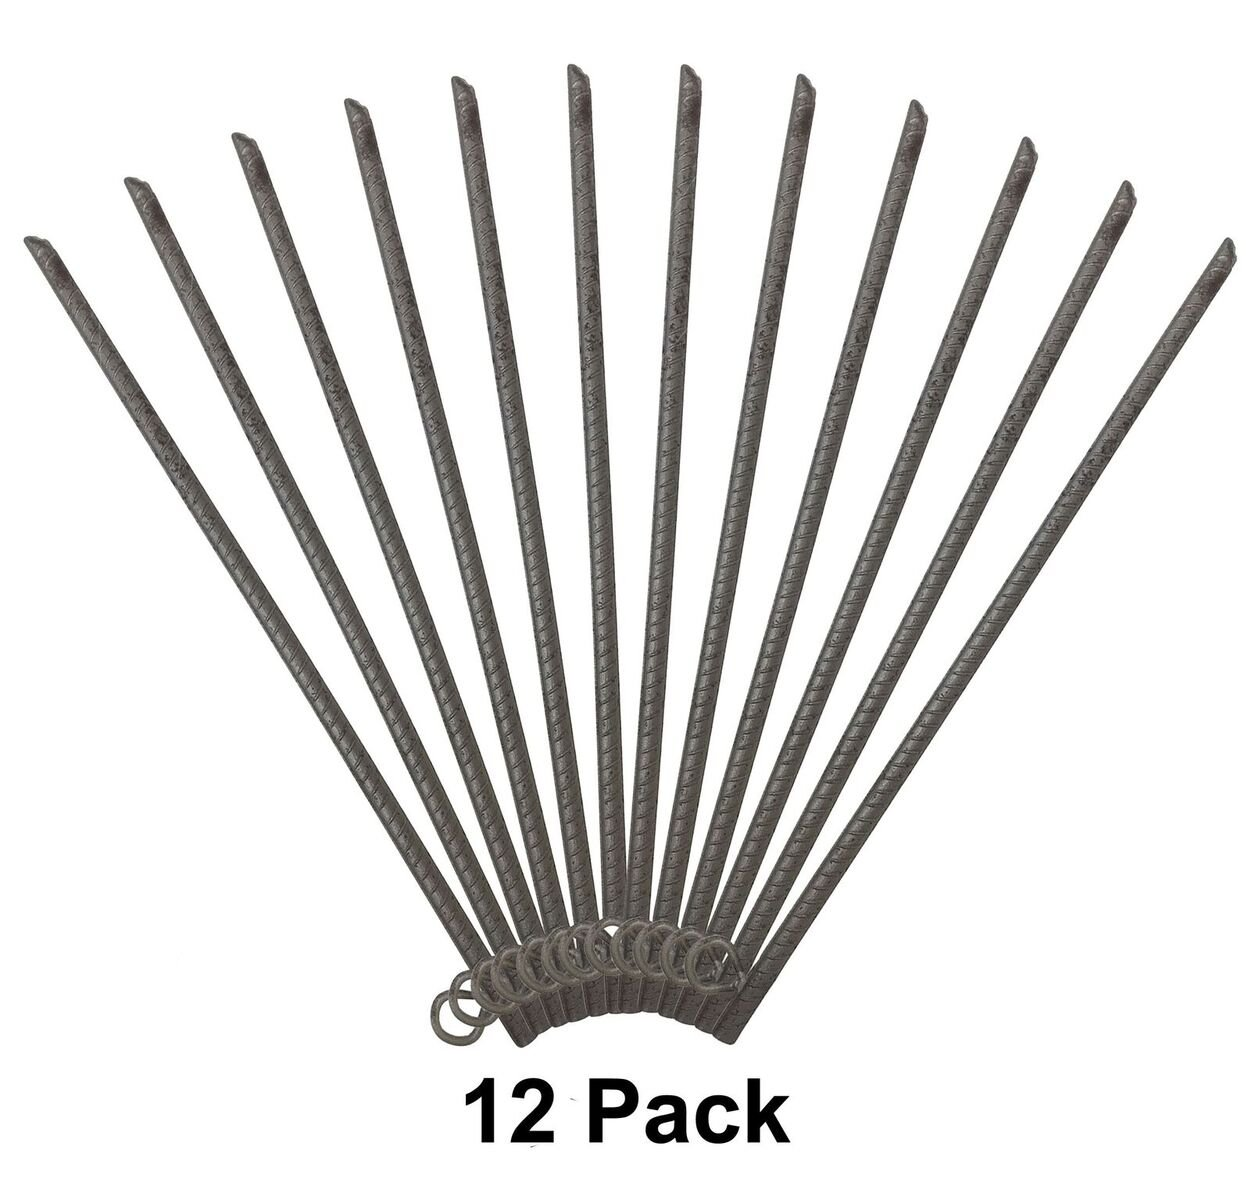 EZ Travel Collection 18'' Metal Rebar Stake with Loop (12) by EZ Travel Collection